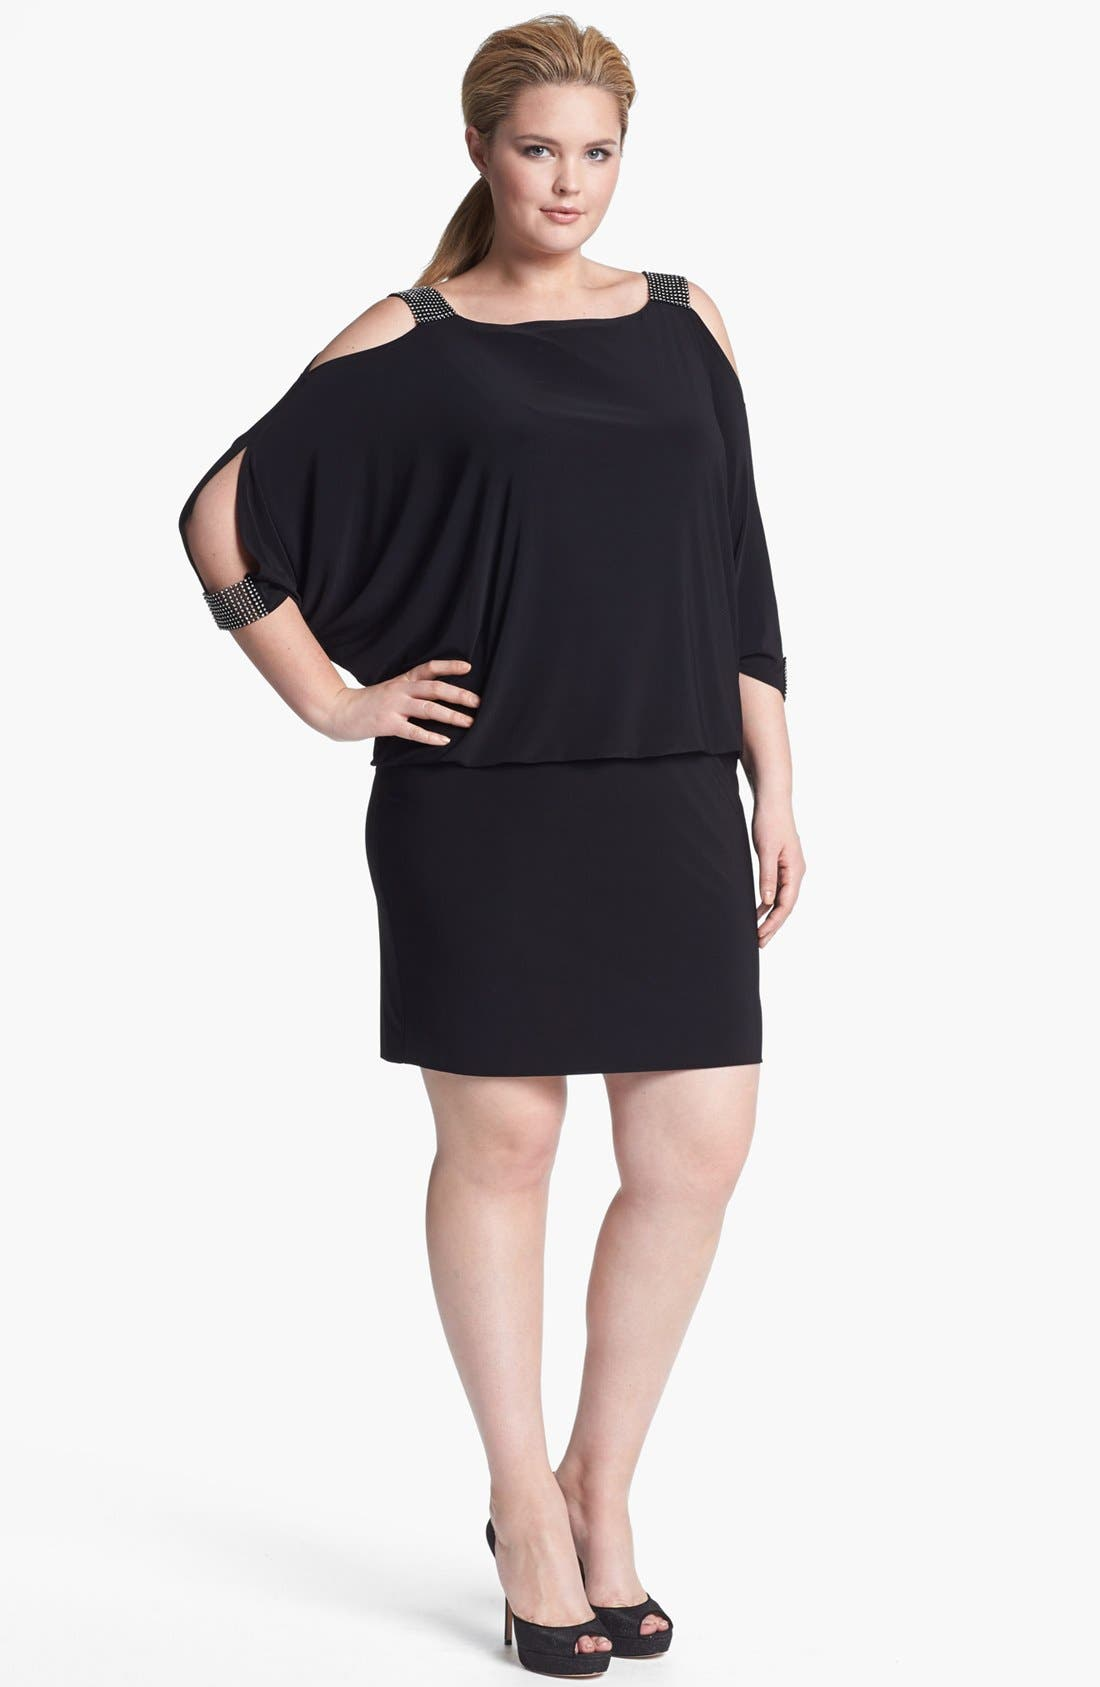 Alternate Image 1 Selected - Betsy & Adam Embellished Jersey Blouson Dress (Plus Size)